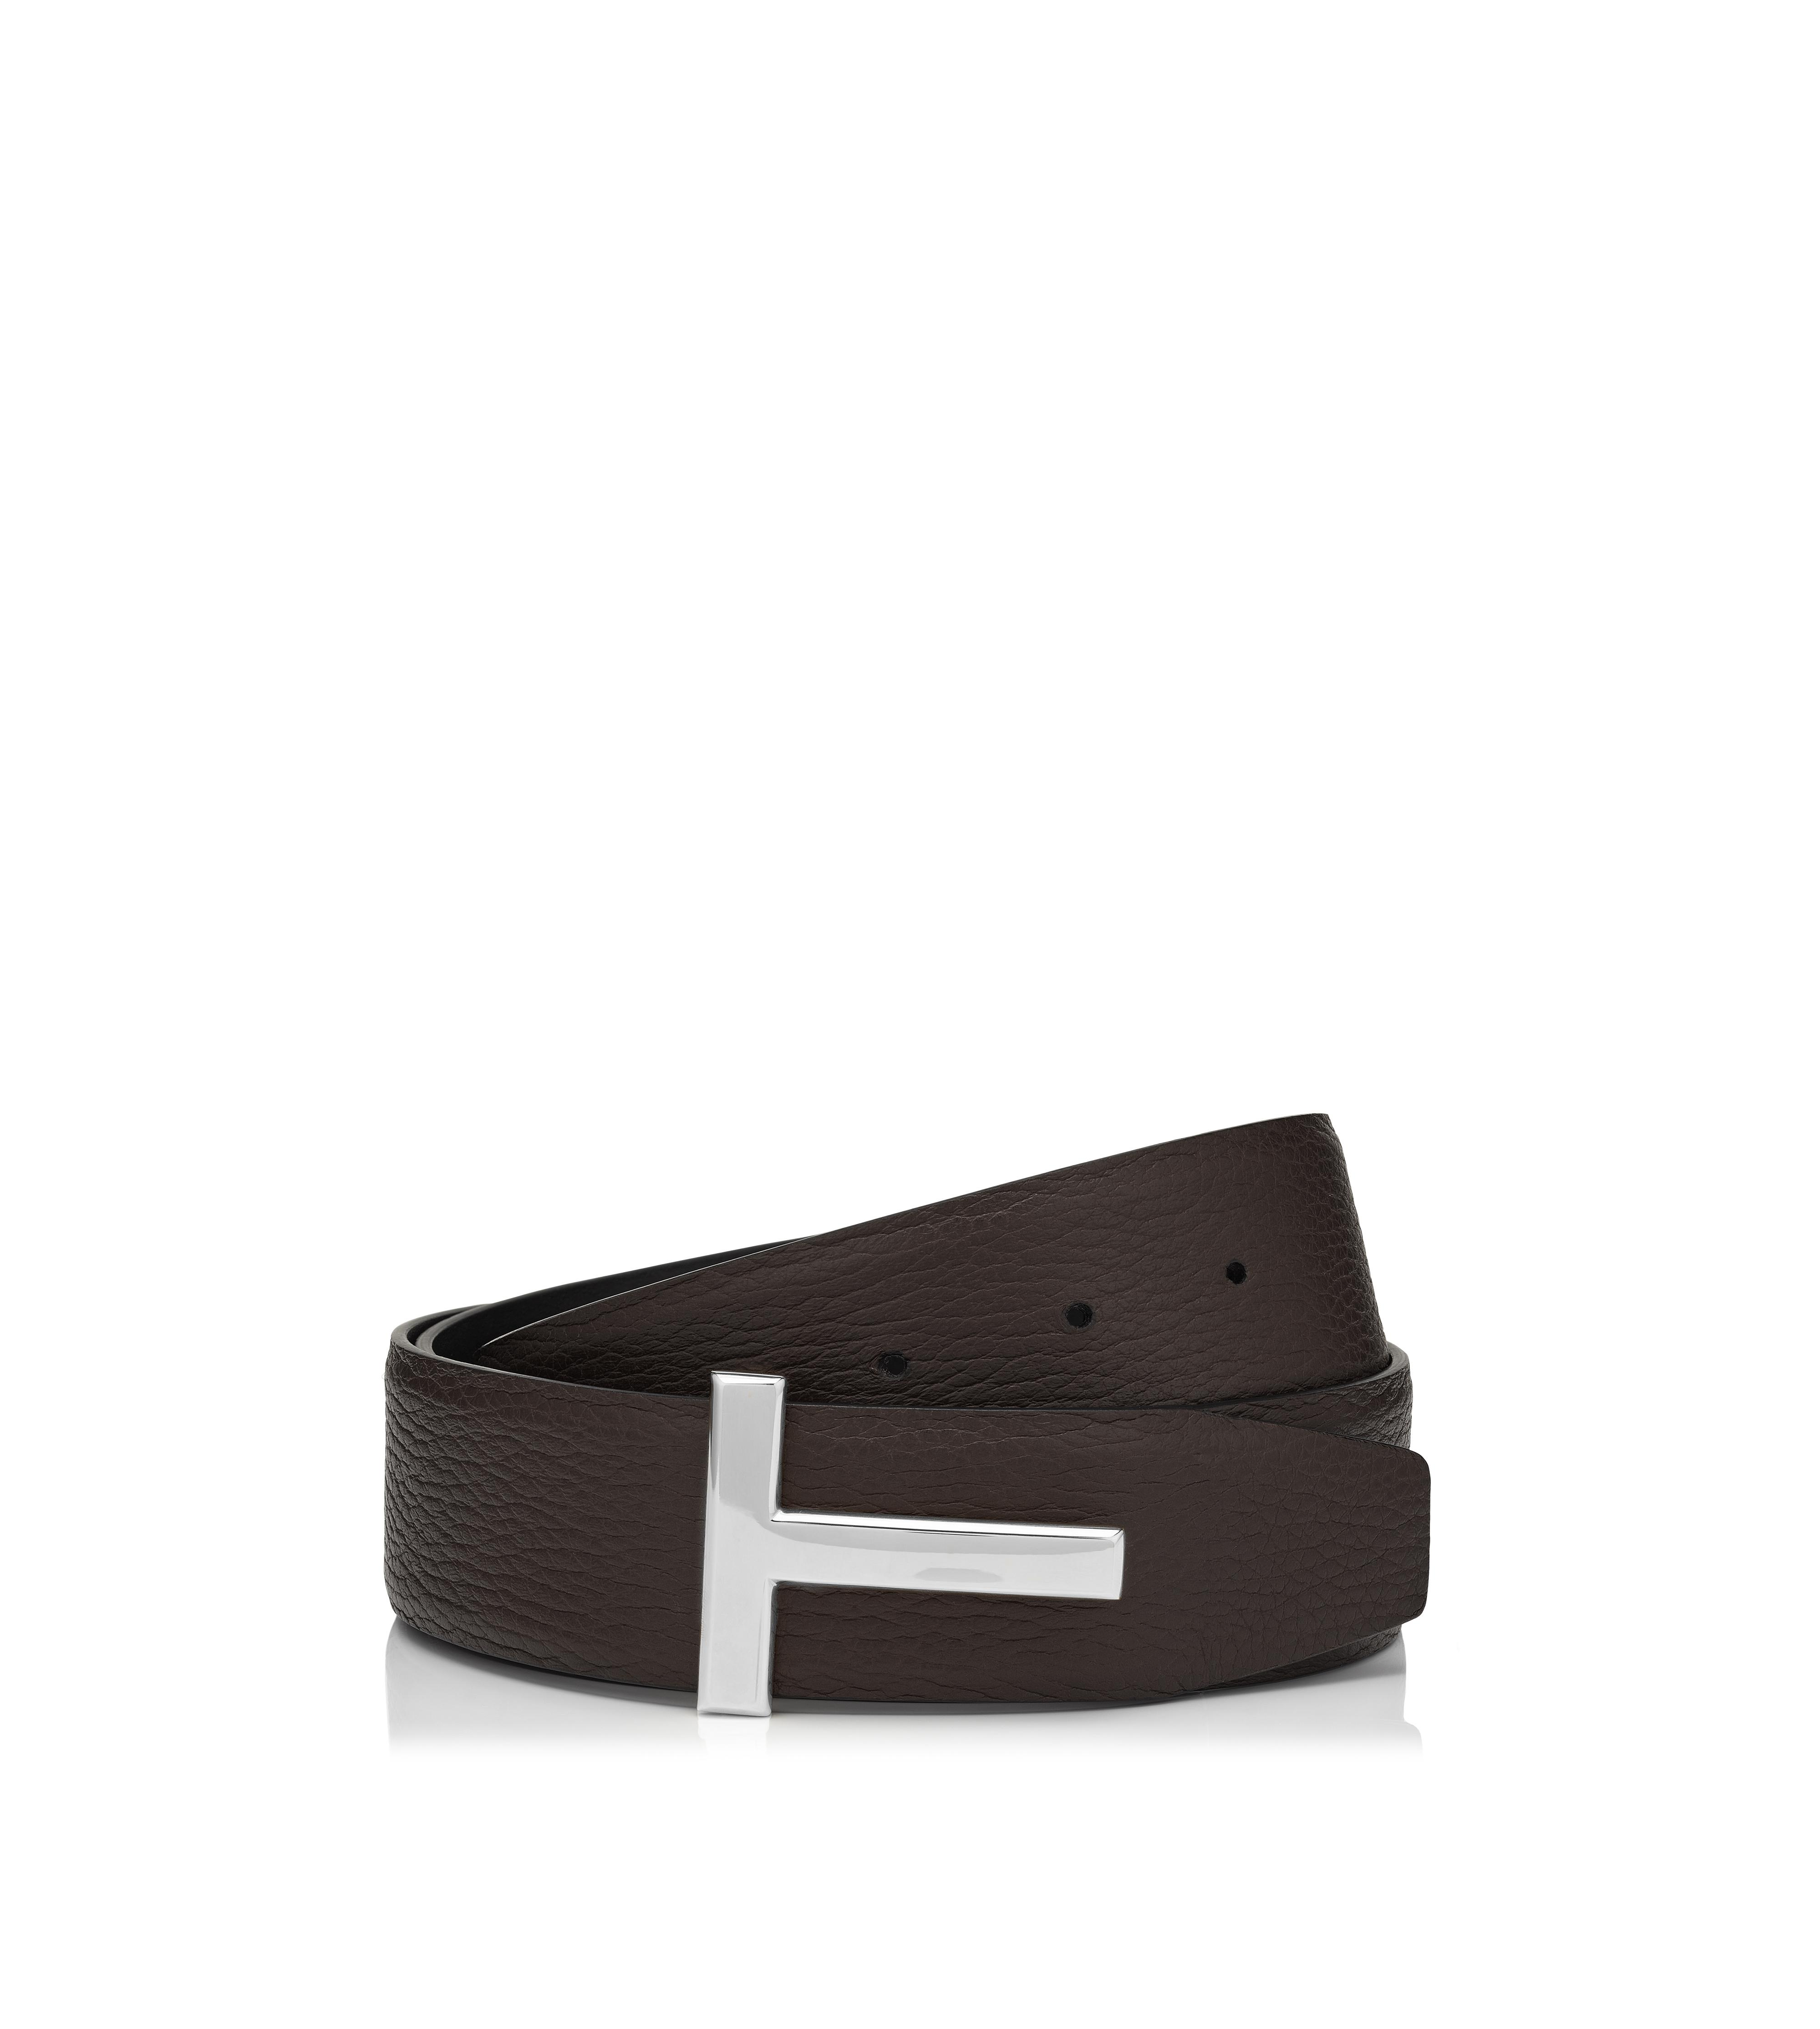 T BUCKLE REVERSIBLE BELT WITH SILVER BUCKLE A thumbnail